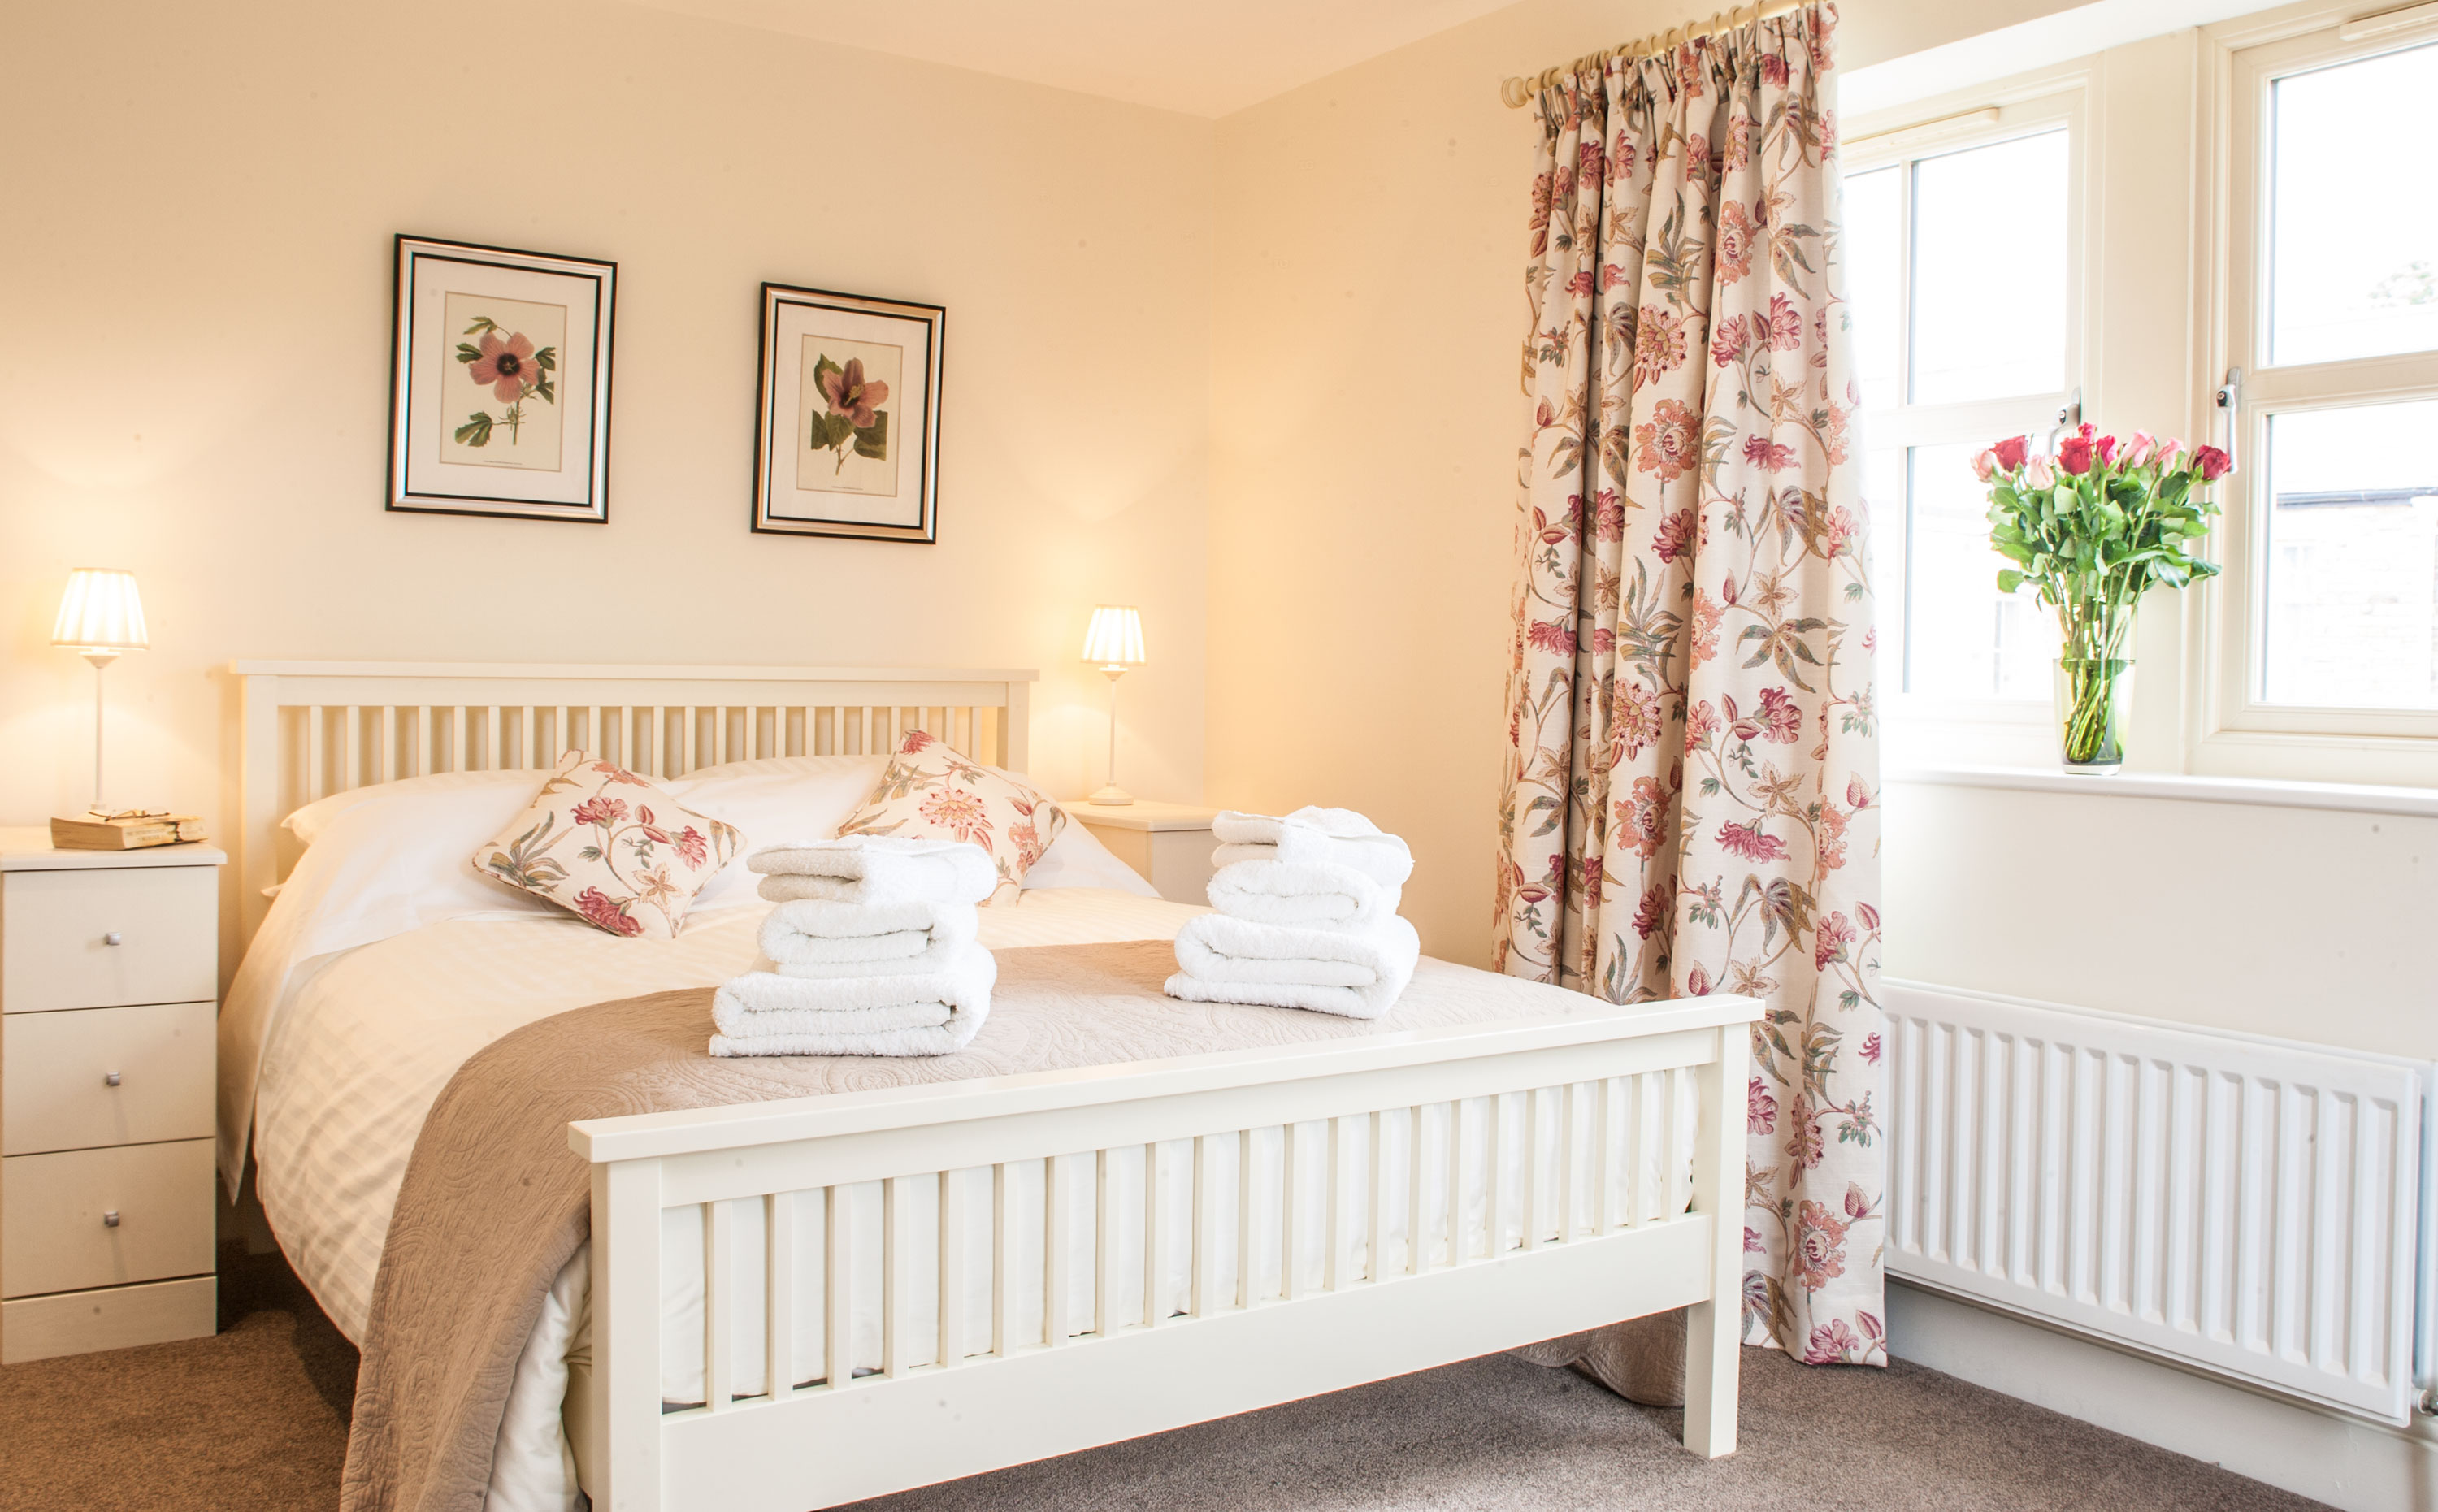 gorgeous self-catering holiday cottages in Warkworth pet friendly private parking with a garden close to the beach